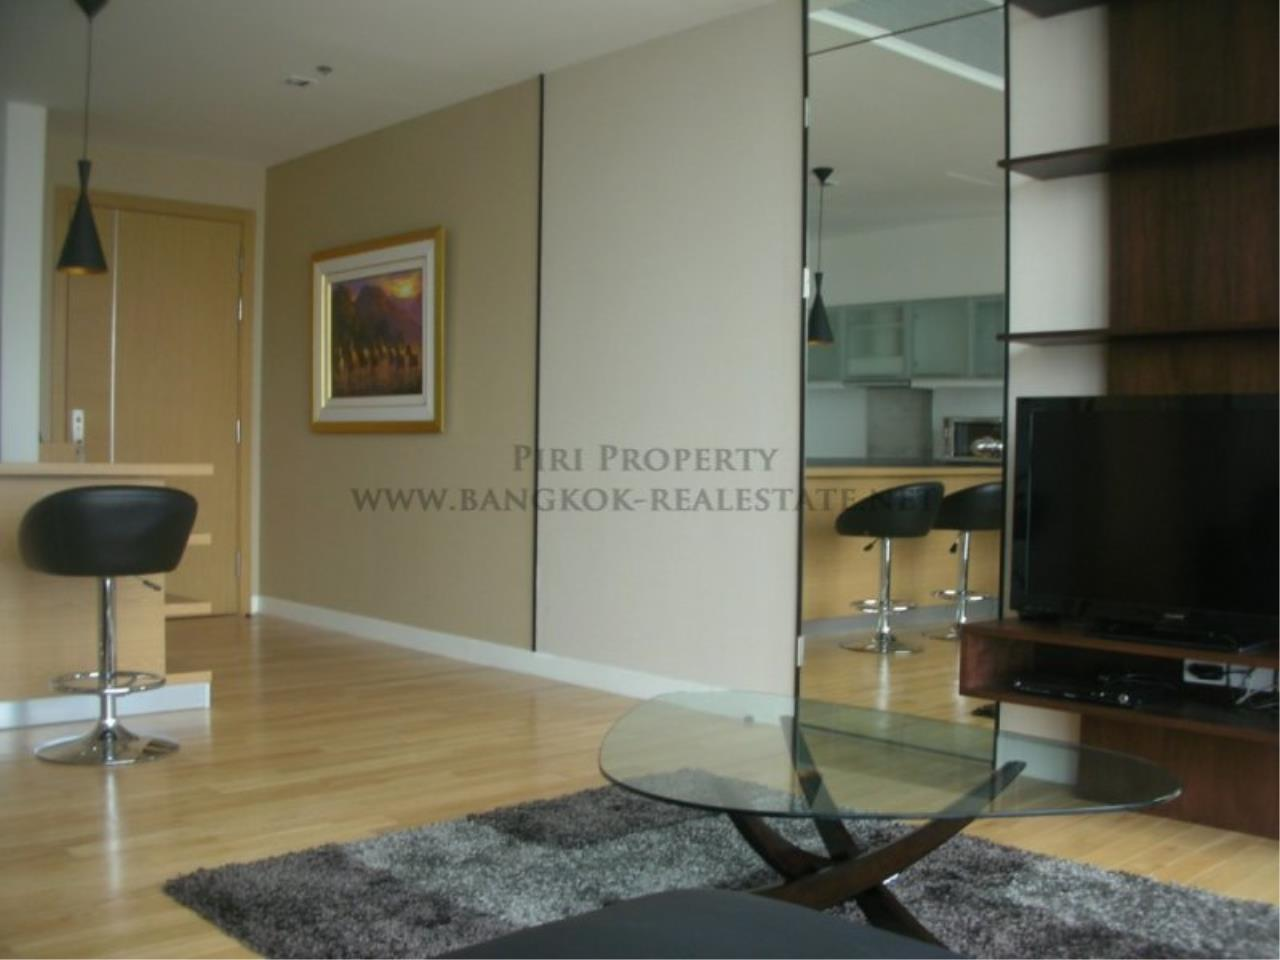 Piri Property Agency's 1 Bedroom - Millennium Residence - High Floor - Foreign Quota 5